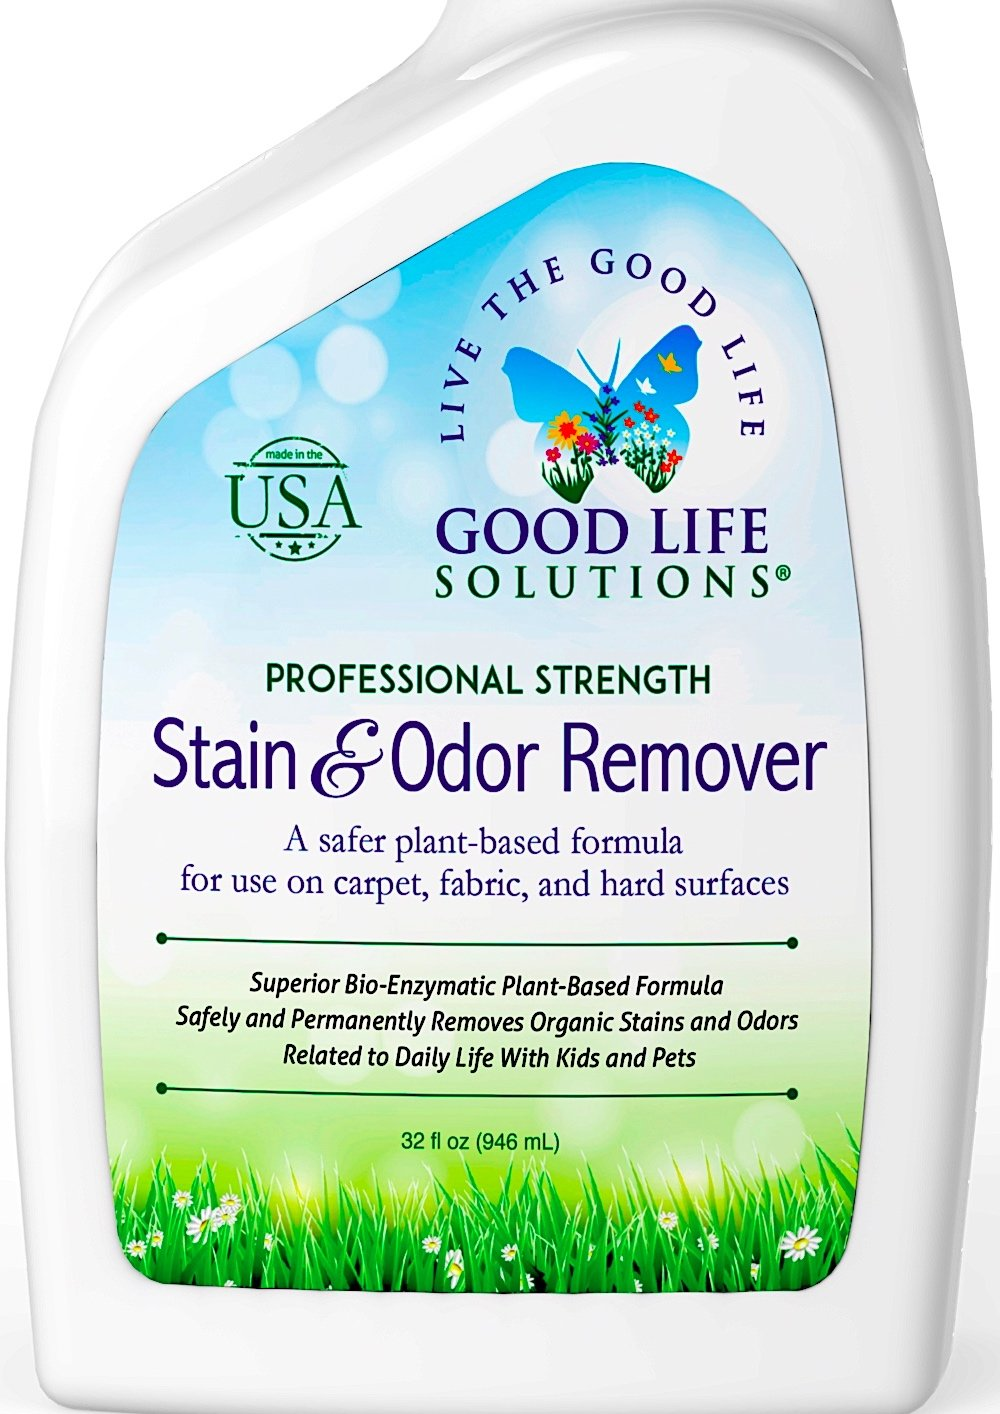 Stain Remover and Odor Eliminator - The Best Professional Strength Toddler, Dog and Cat Urine Cleaner - A Safer Plant-Based Enzyme Formula for Carpet Fabric Upholstery & Hard Floors ECO-FRIENDLY 32oz